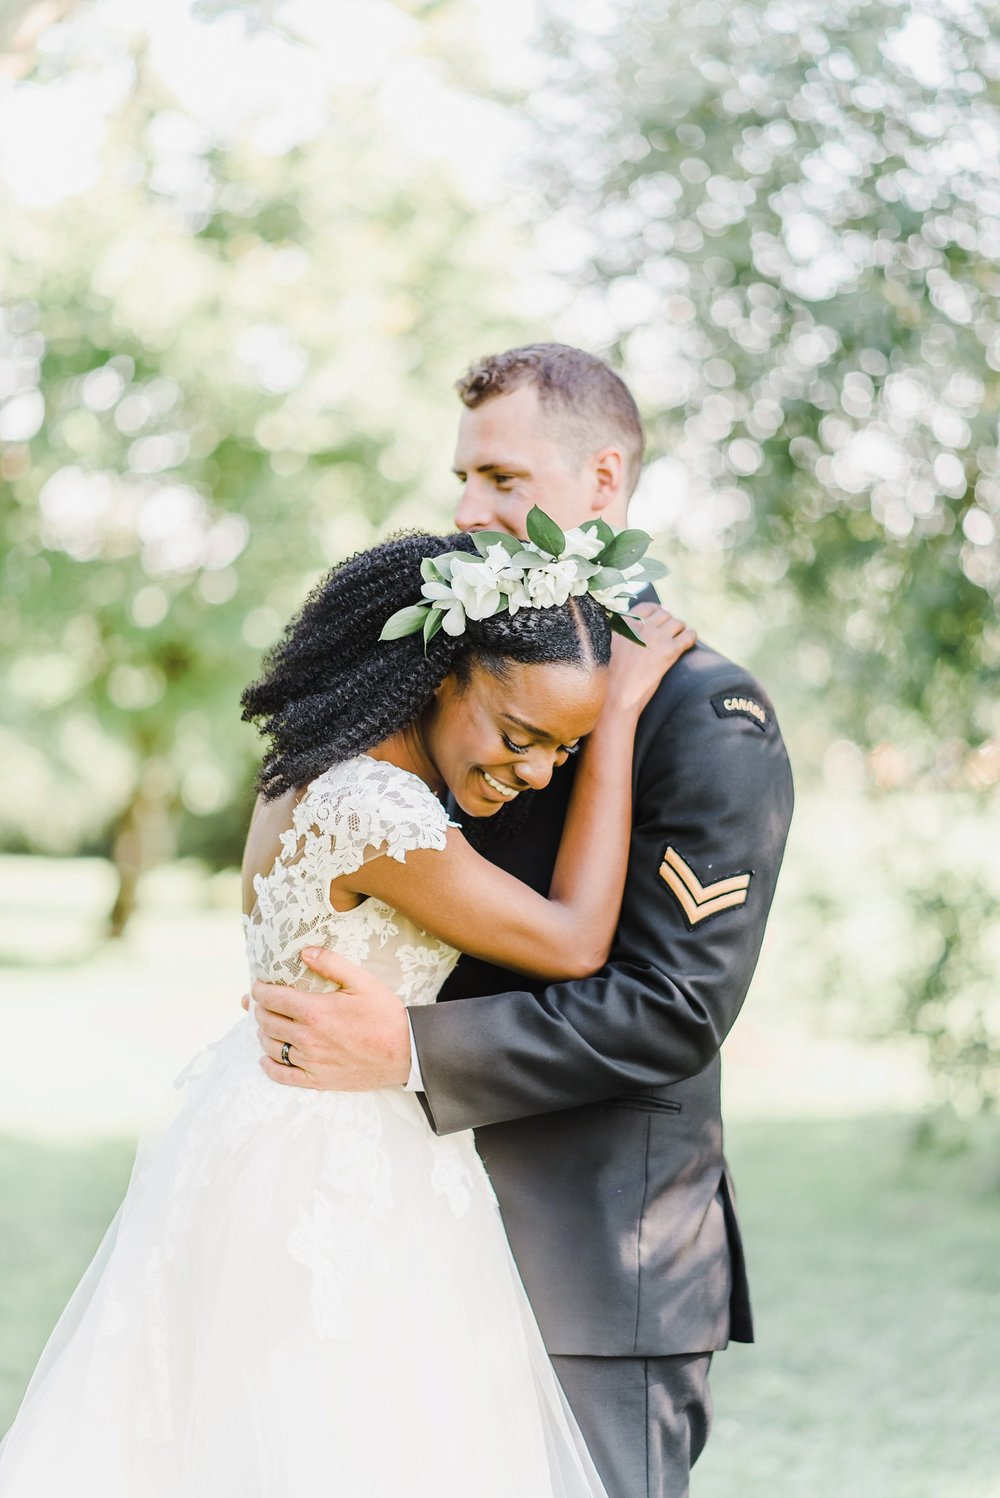 light airy indie fine art ottawa wedding photographer | Ali and Batoul Photography_1002.jpg